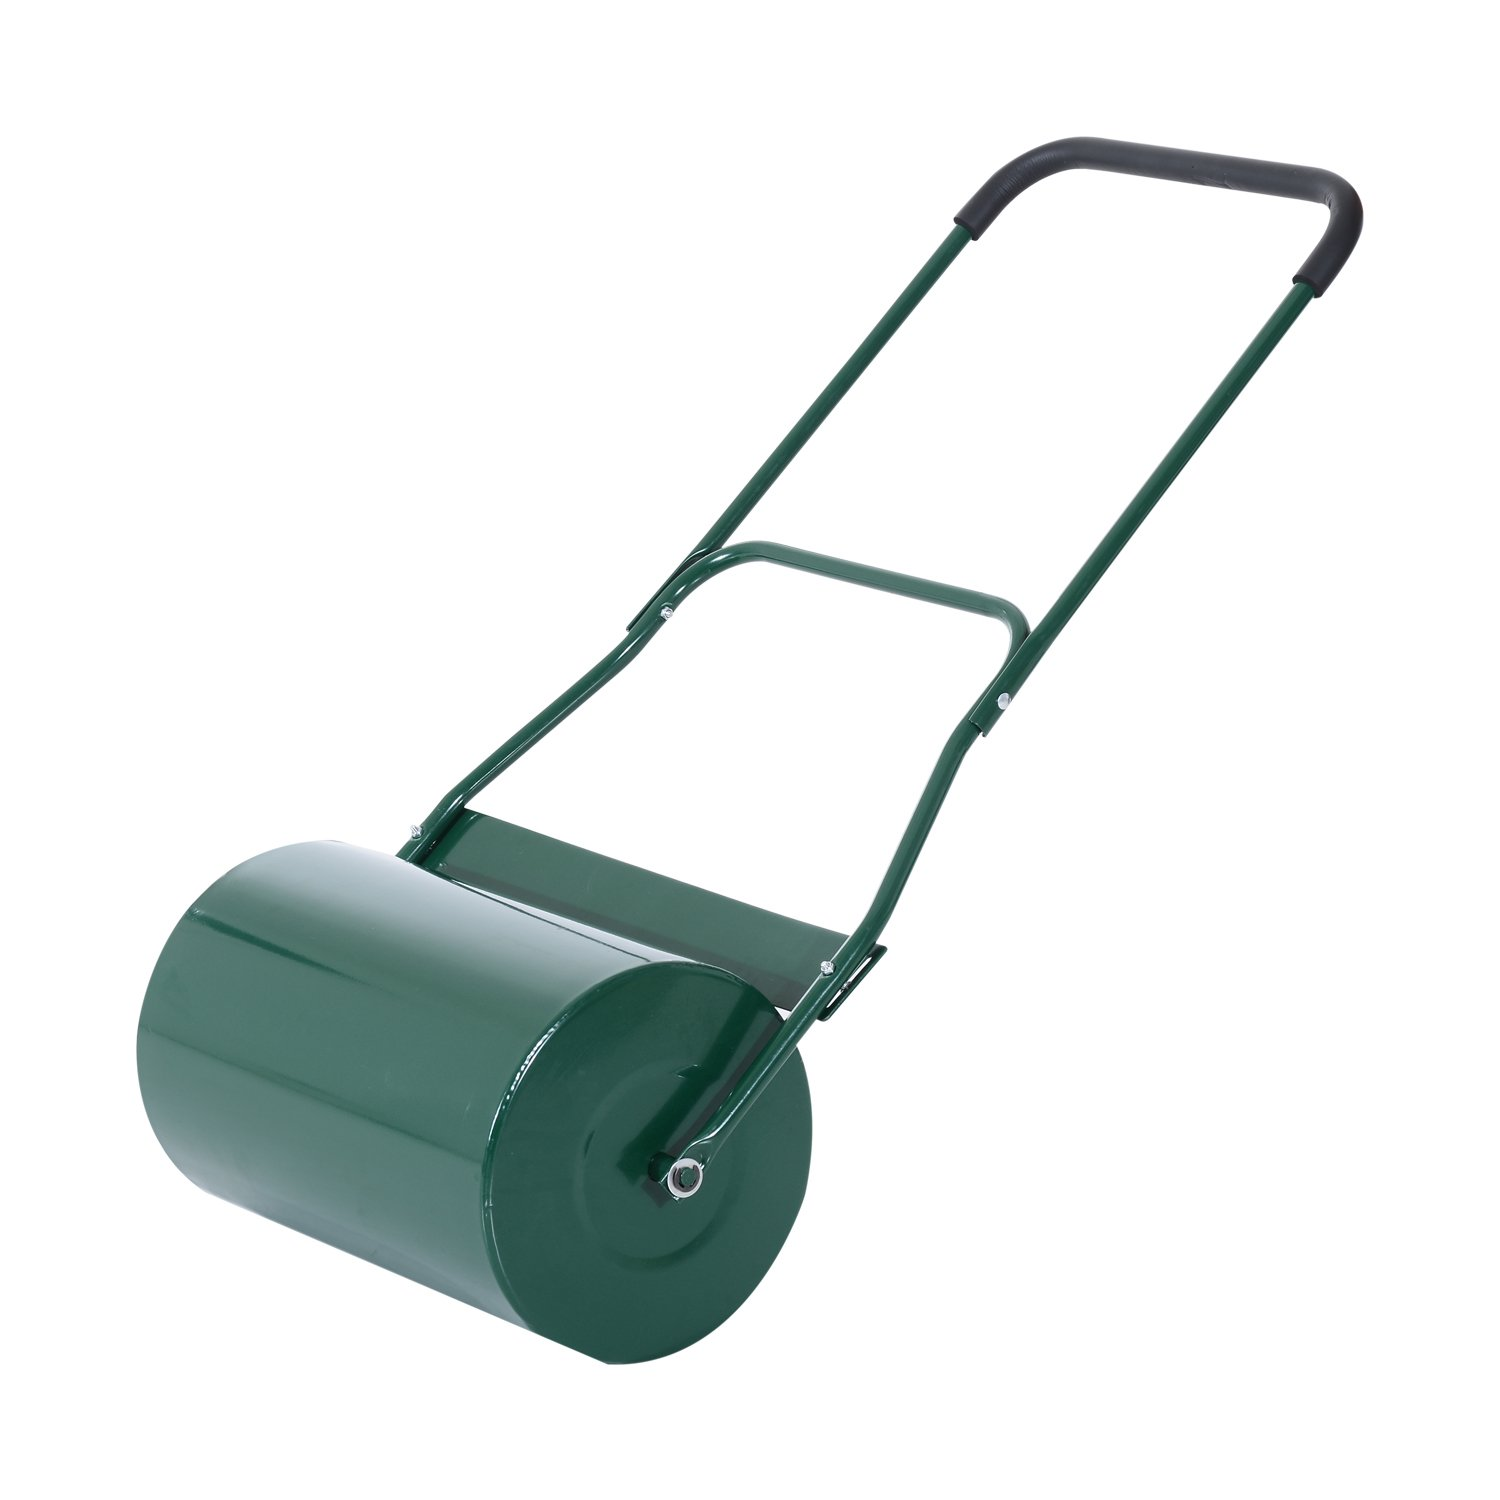 Outsunny 40L Lawn Roller Drum Scraper Bar Collapsible Handle Water or Sand Filled Φ32cm Green Sold By MHSTAR UK845-0600331